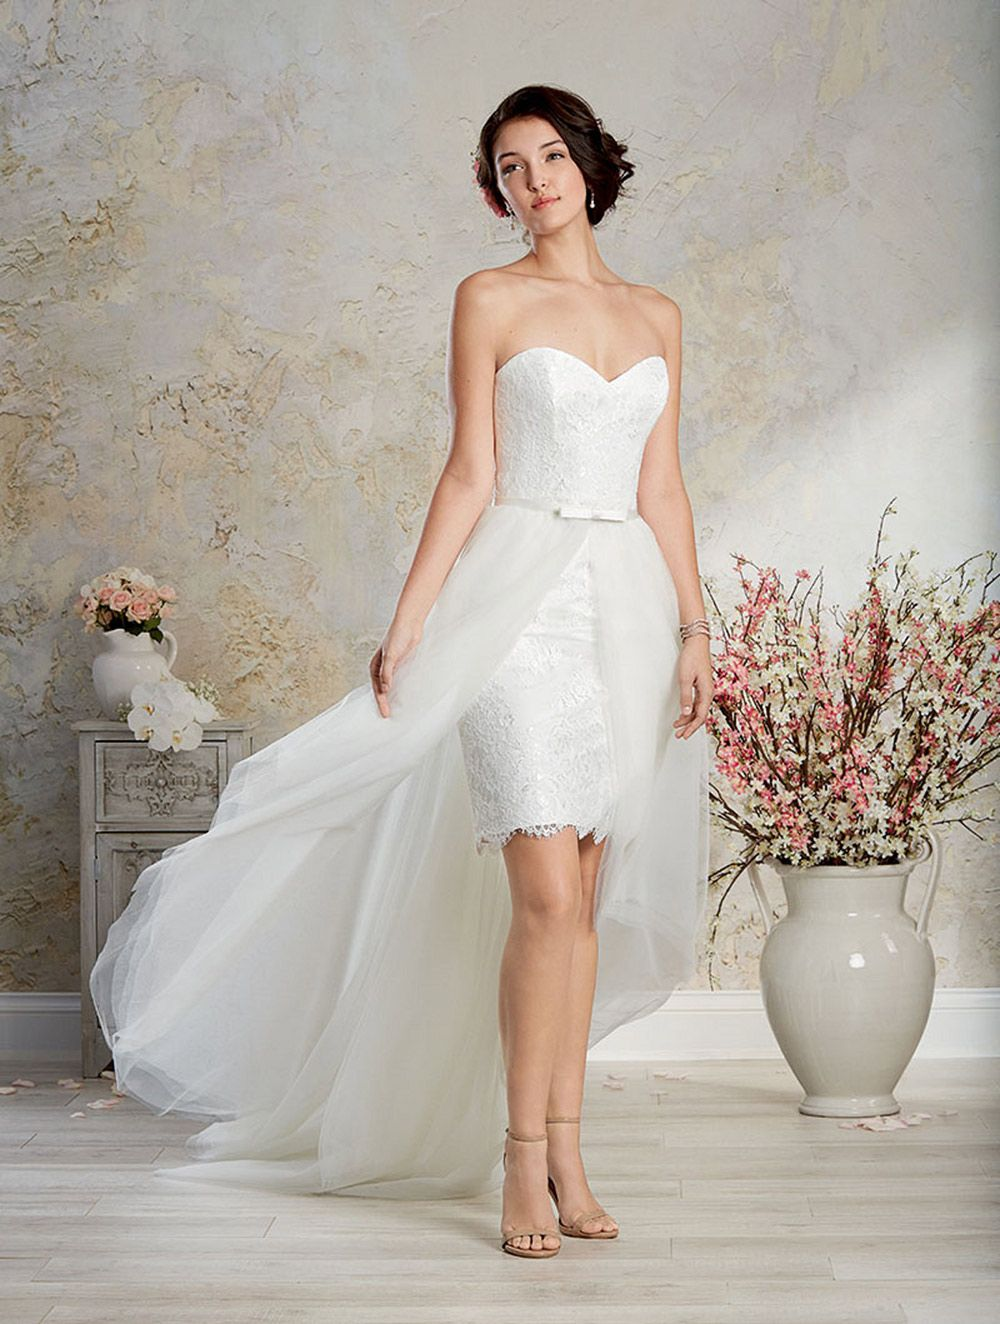 Alfred angelo wedding dress vestido de novia wedding dress a romantic wedding gown with strapless sweetheart neckline sheath frame cocktail skirt and sheer hi low overskirt shop the alfred angelo ombrellifo Gallery